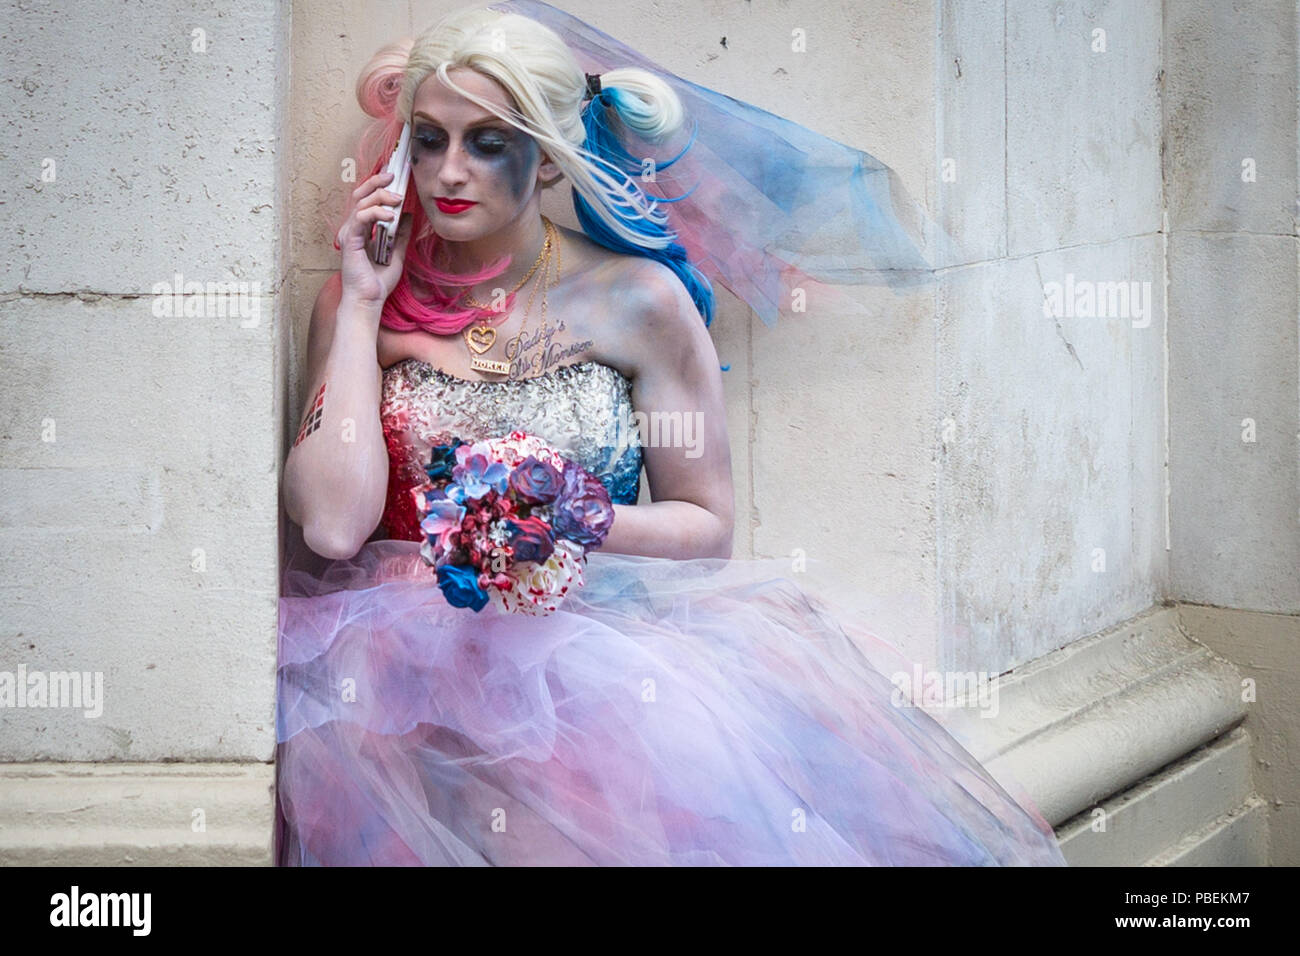 London, UK. 28th July 2018. London Film & Comic Con 2018 at the Olympia London. Credit: Guy Corbishley/Alamy Live News - Stock Image